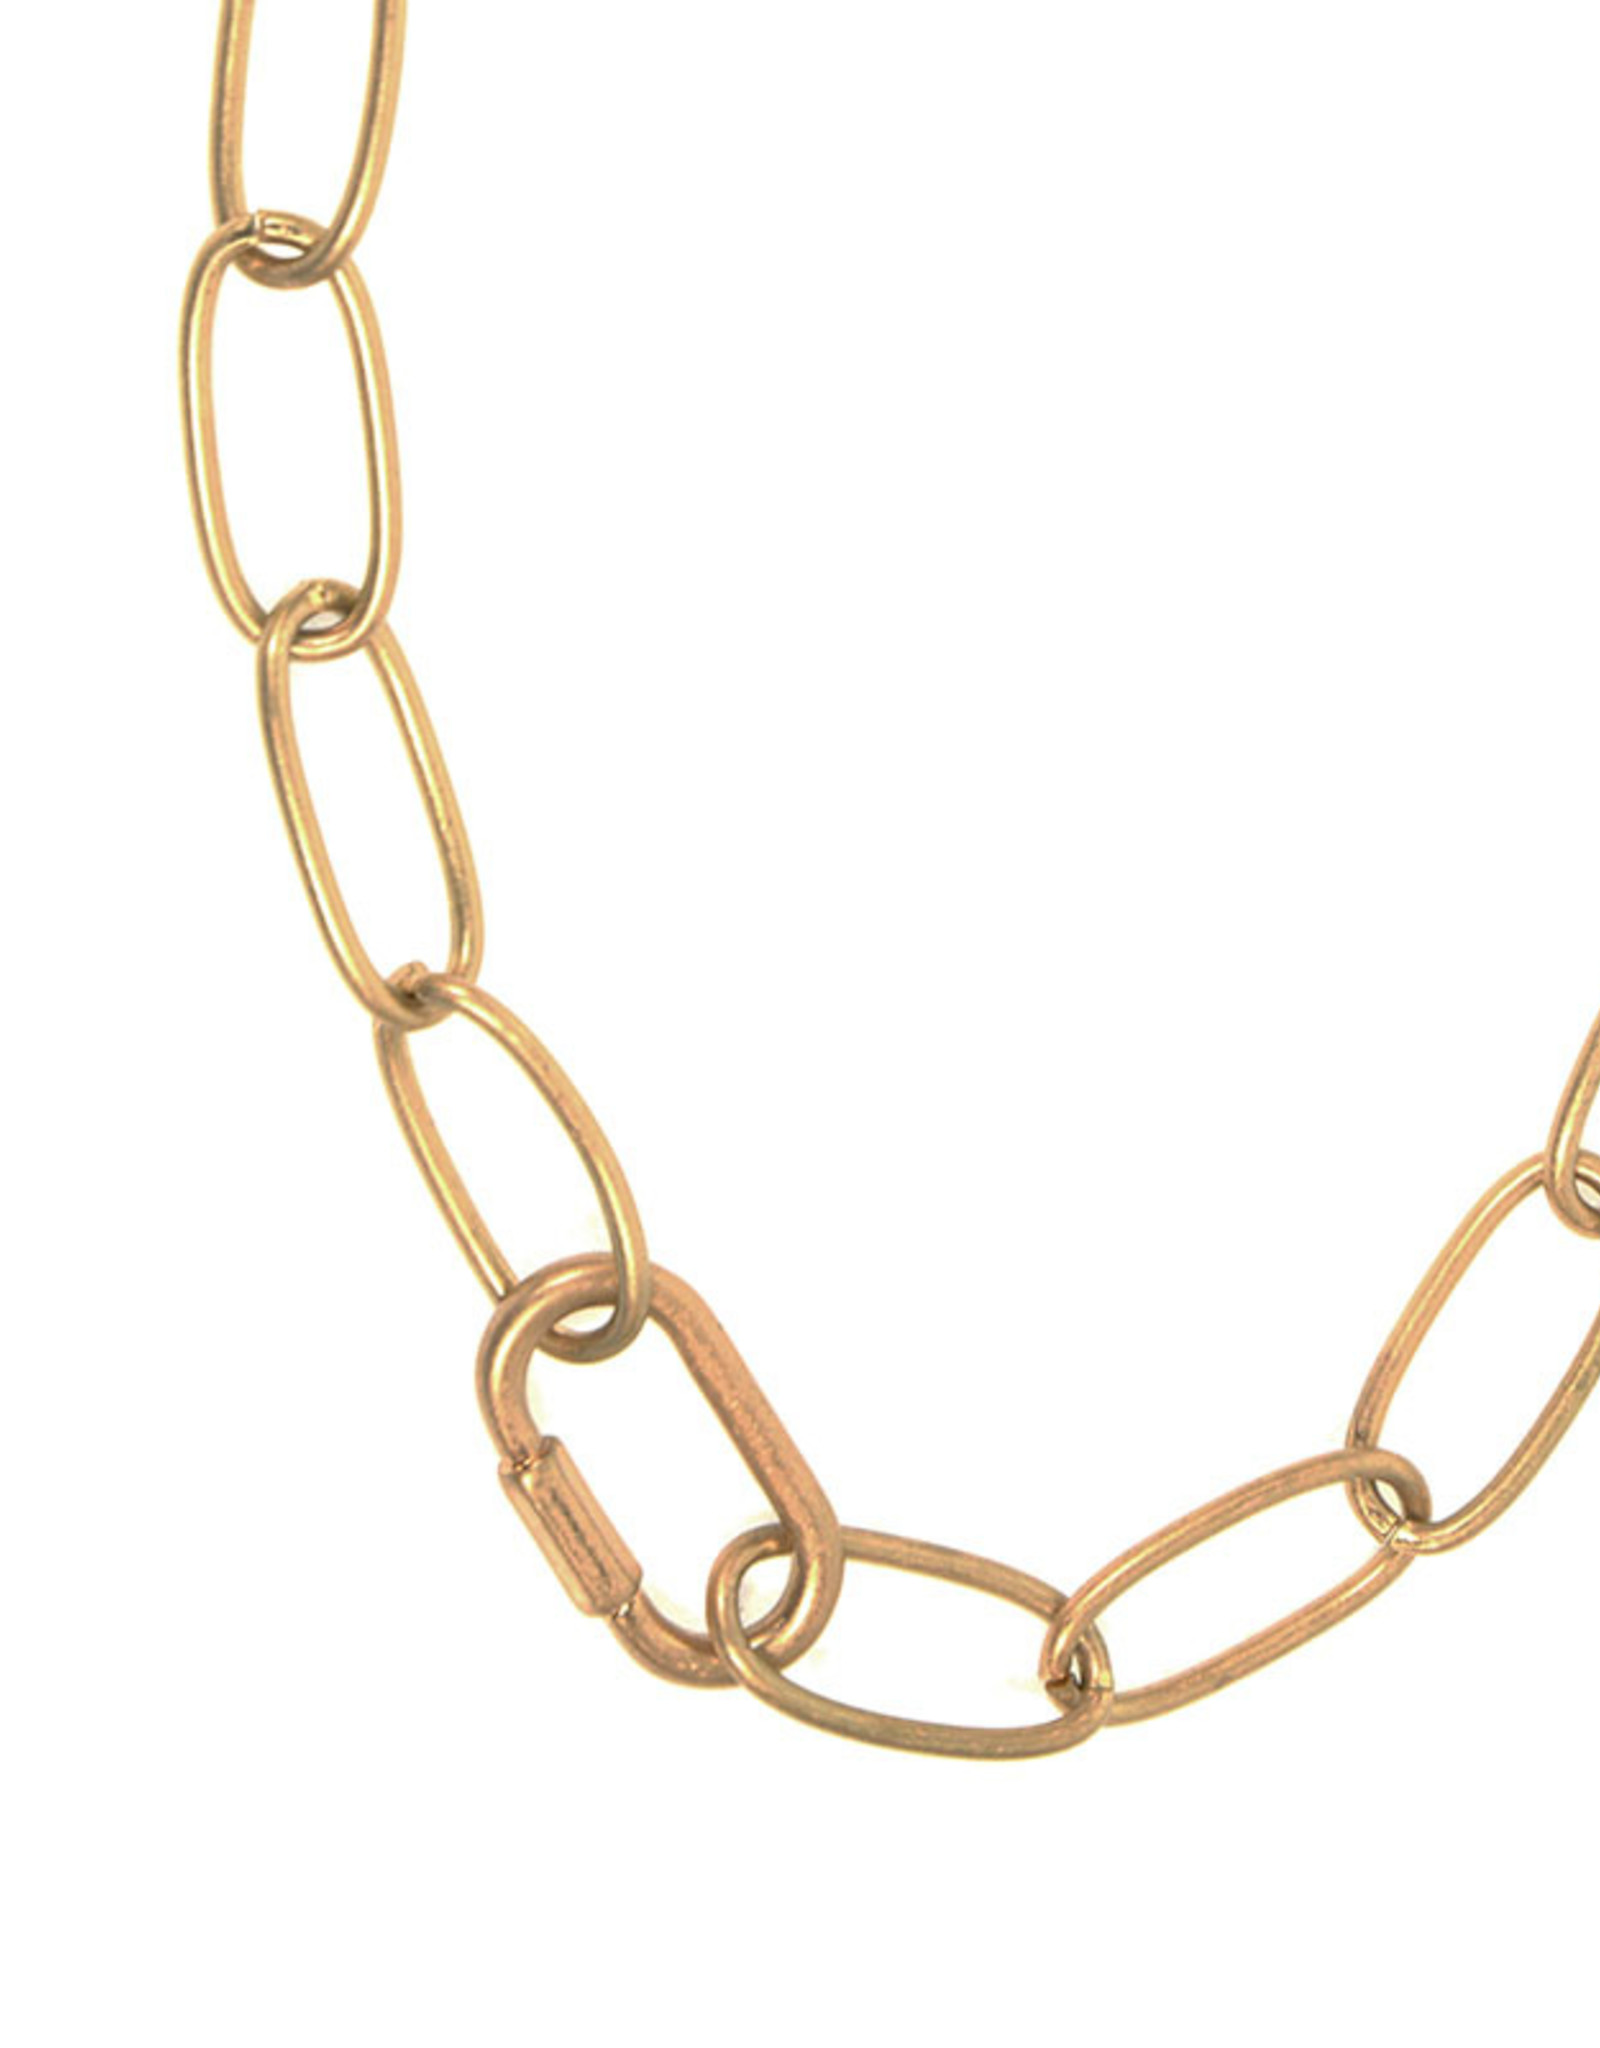 Gold Oval Link Chain Necklace